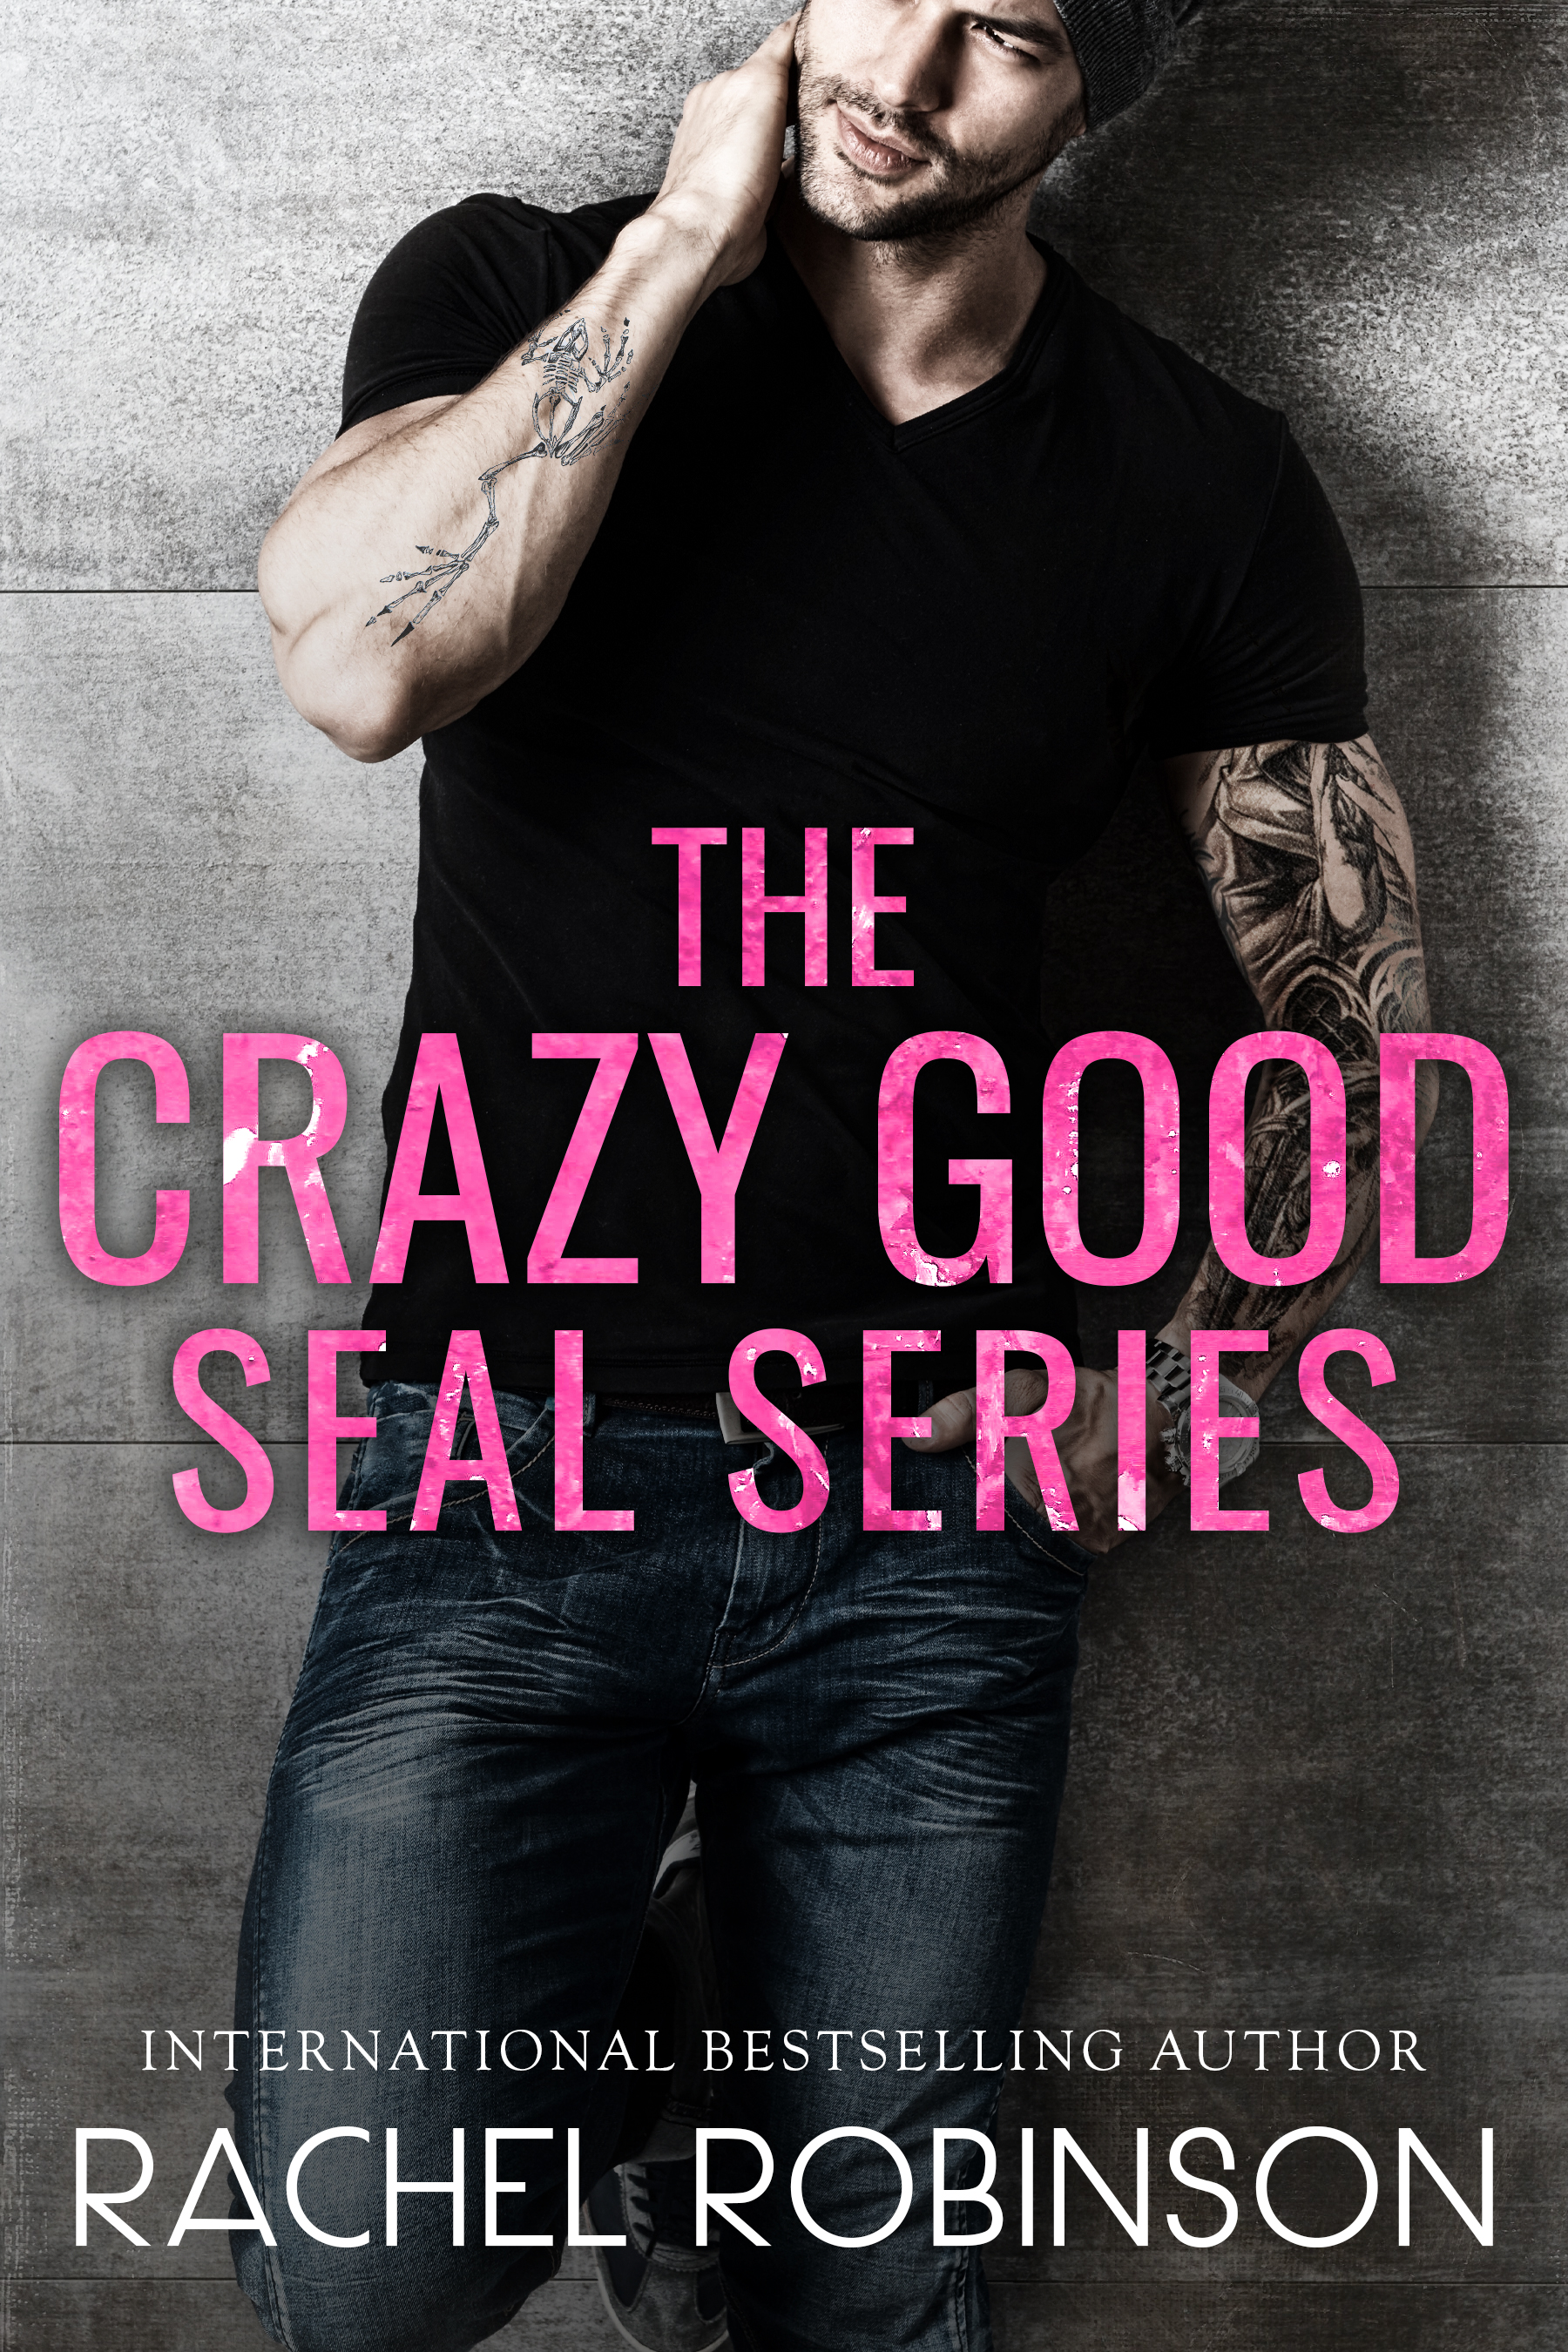 The Crazy Good SEAL Series - Final